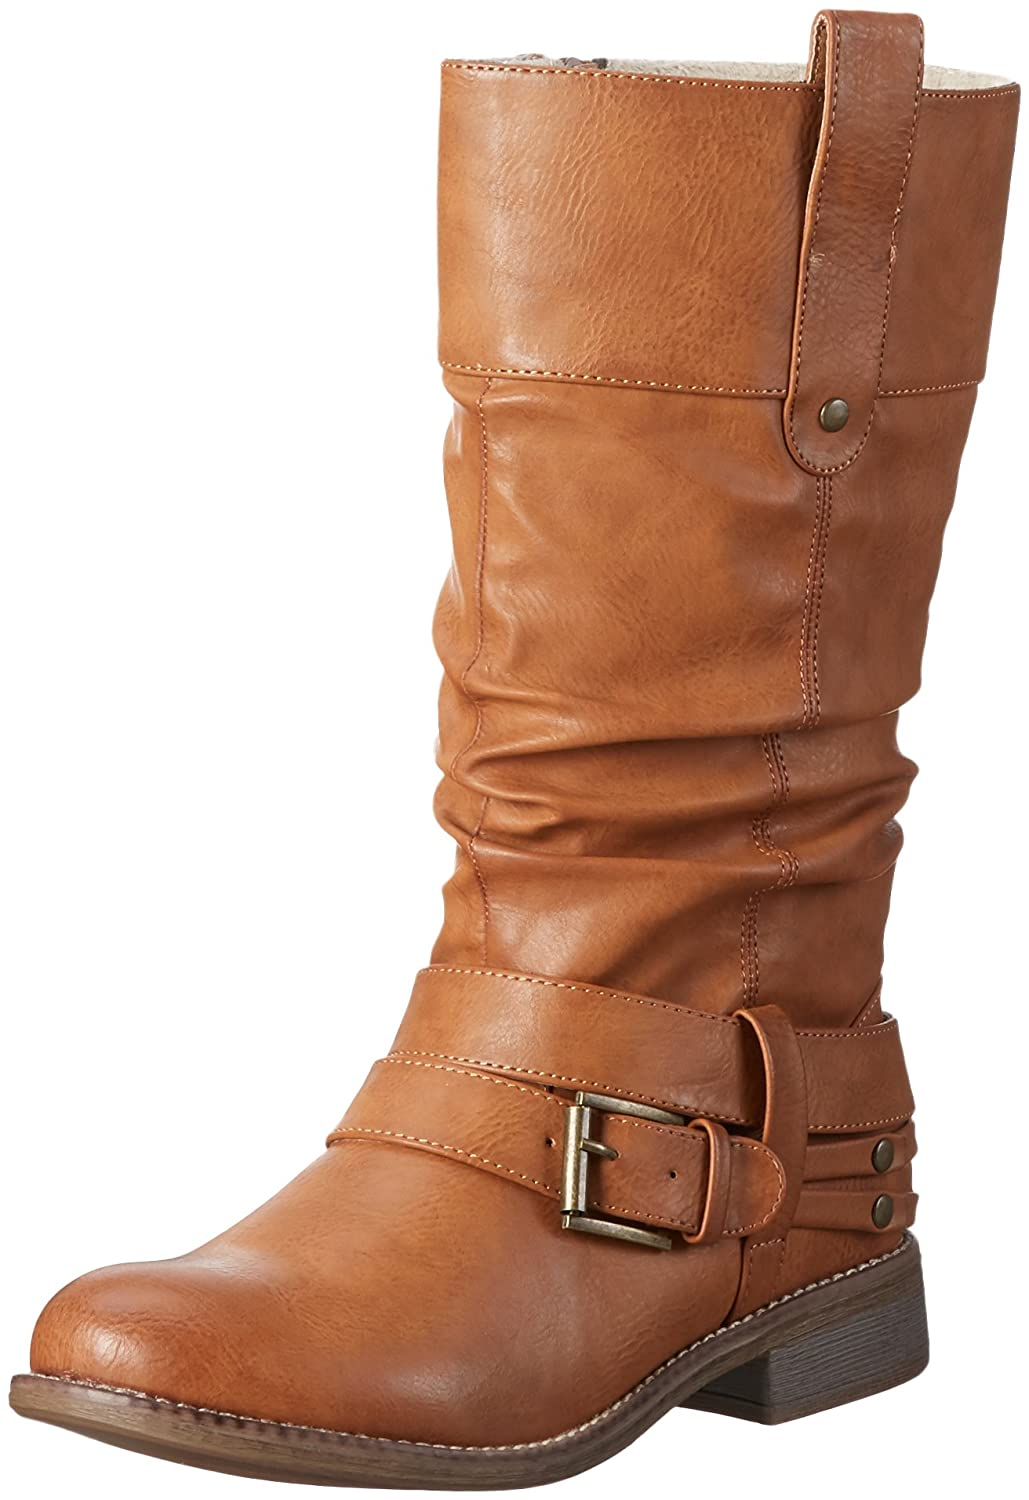 Rieker 19493 95678, Bottes Femme (Cayenne/23) Marron Bottes (Cayenne/23) d2c14f4 - therethere.space